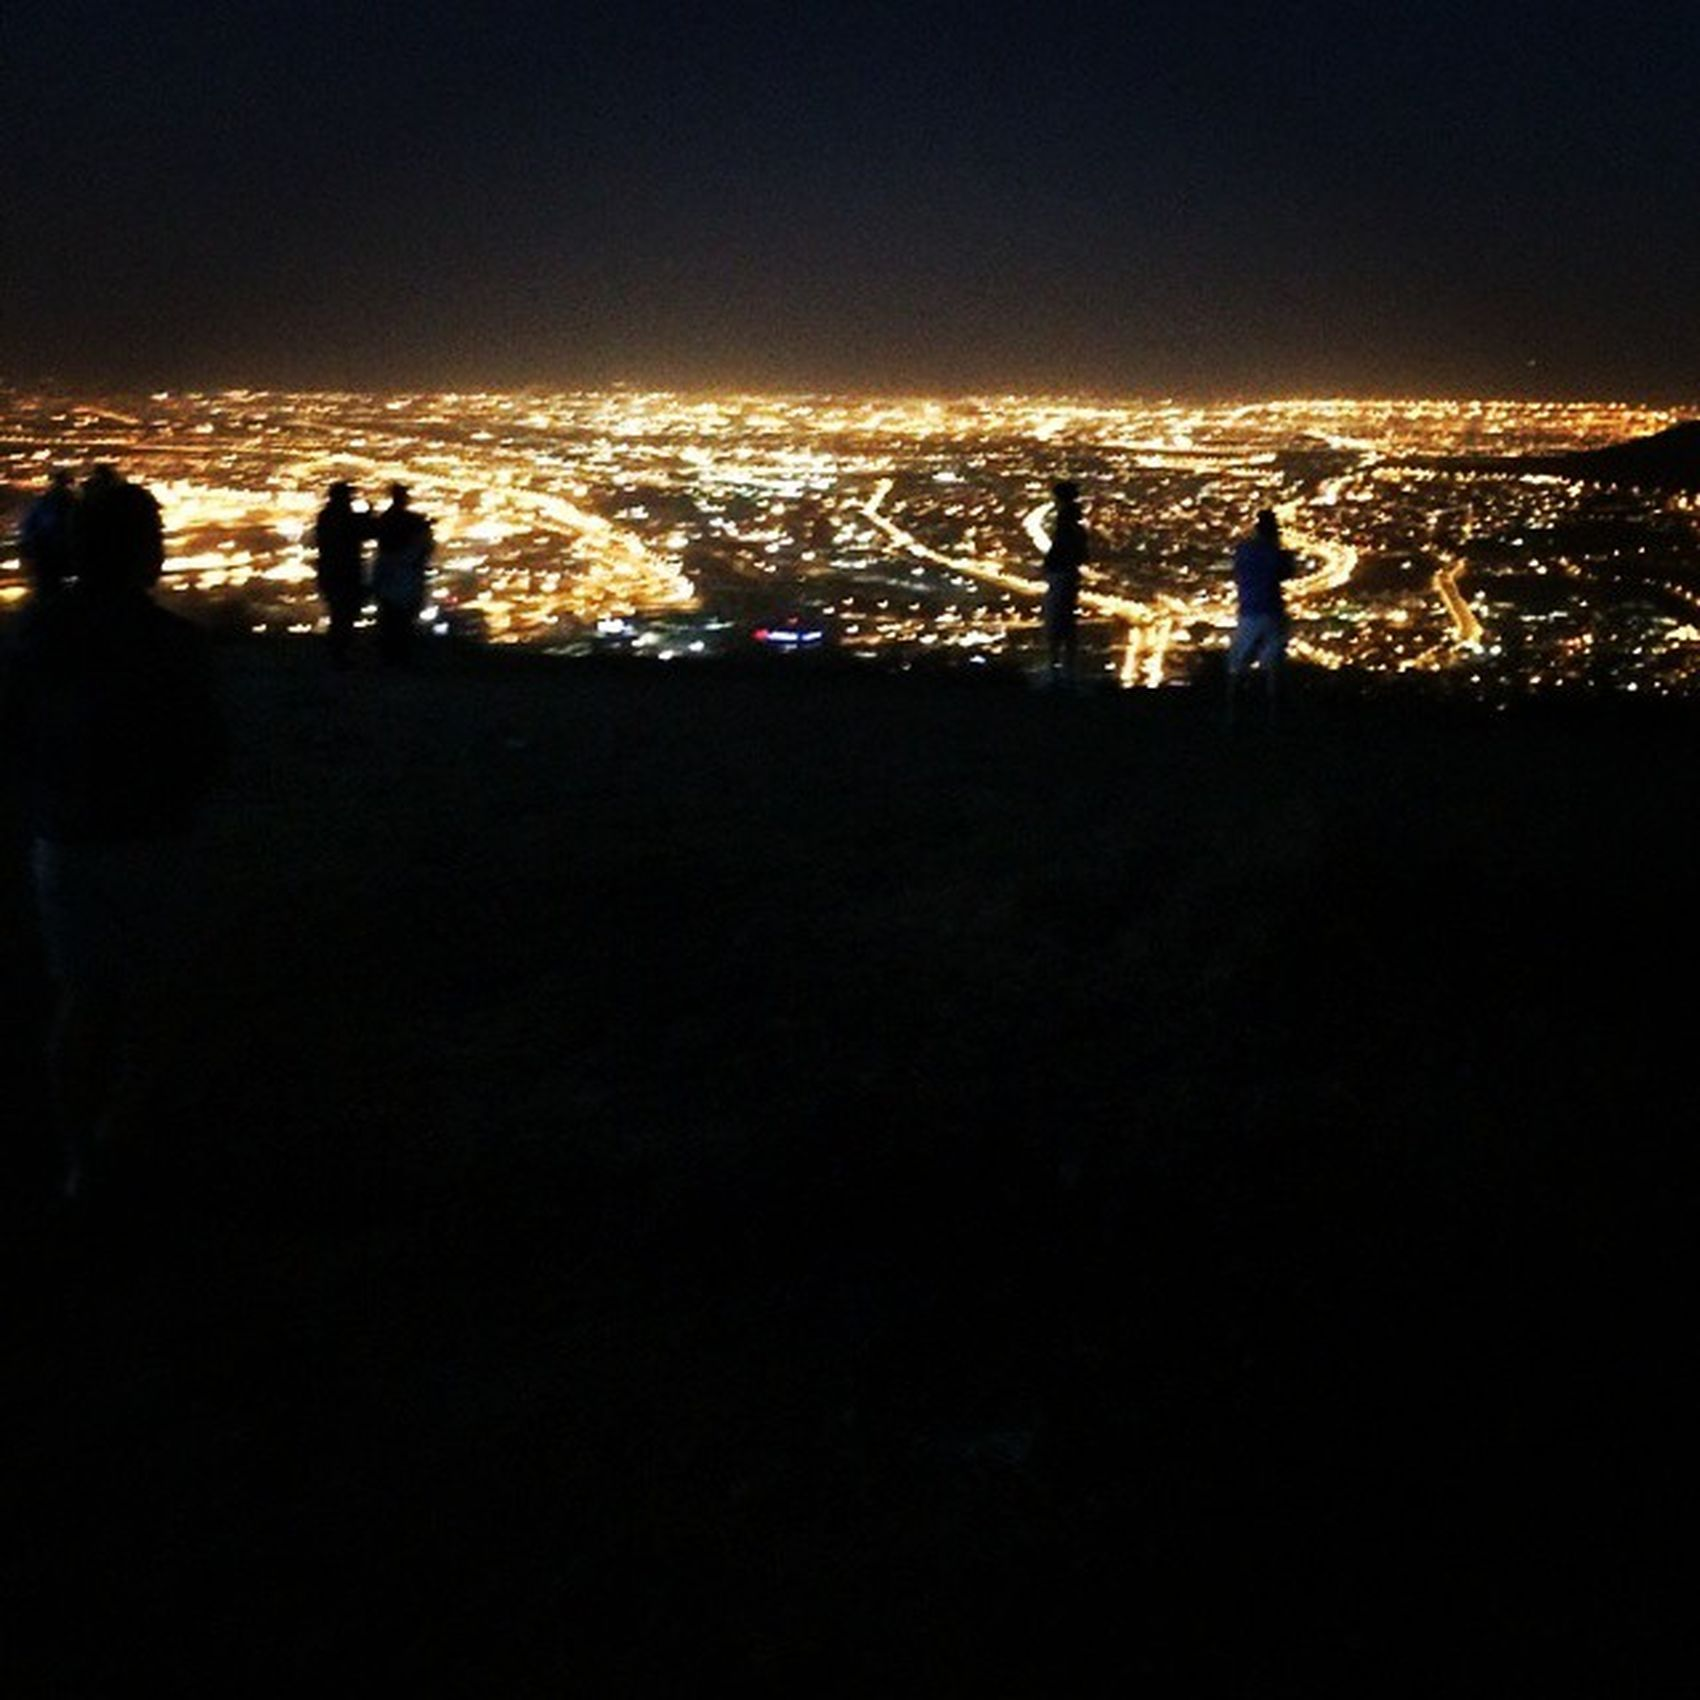 Capetownlights Capetown Signalhill View viewpoint lights dark city sunstar westerncape holiday hill photography like bright